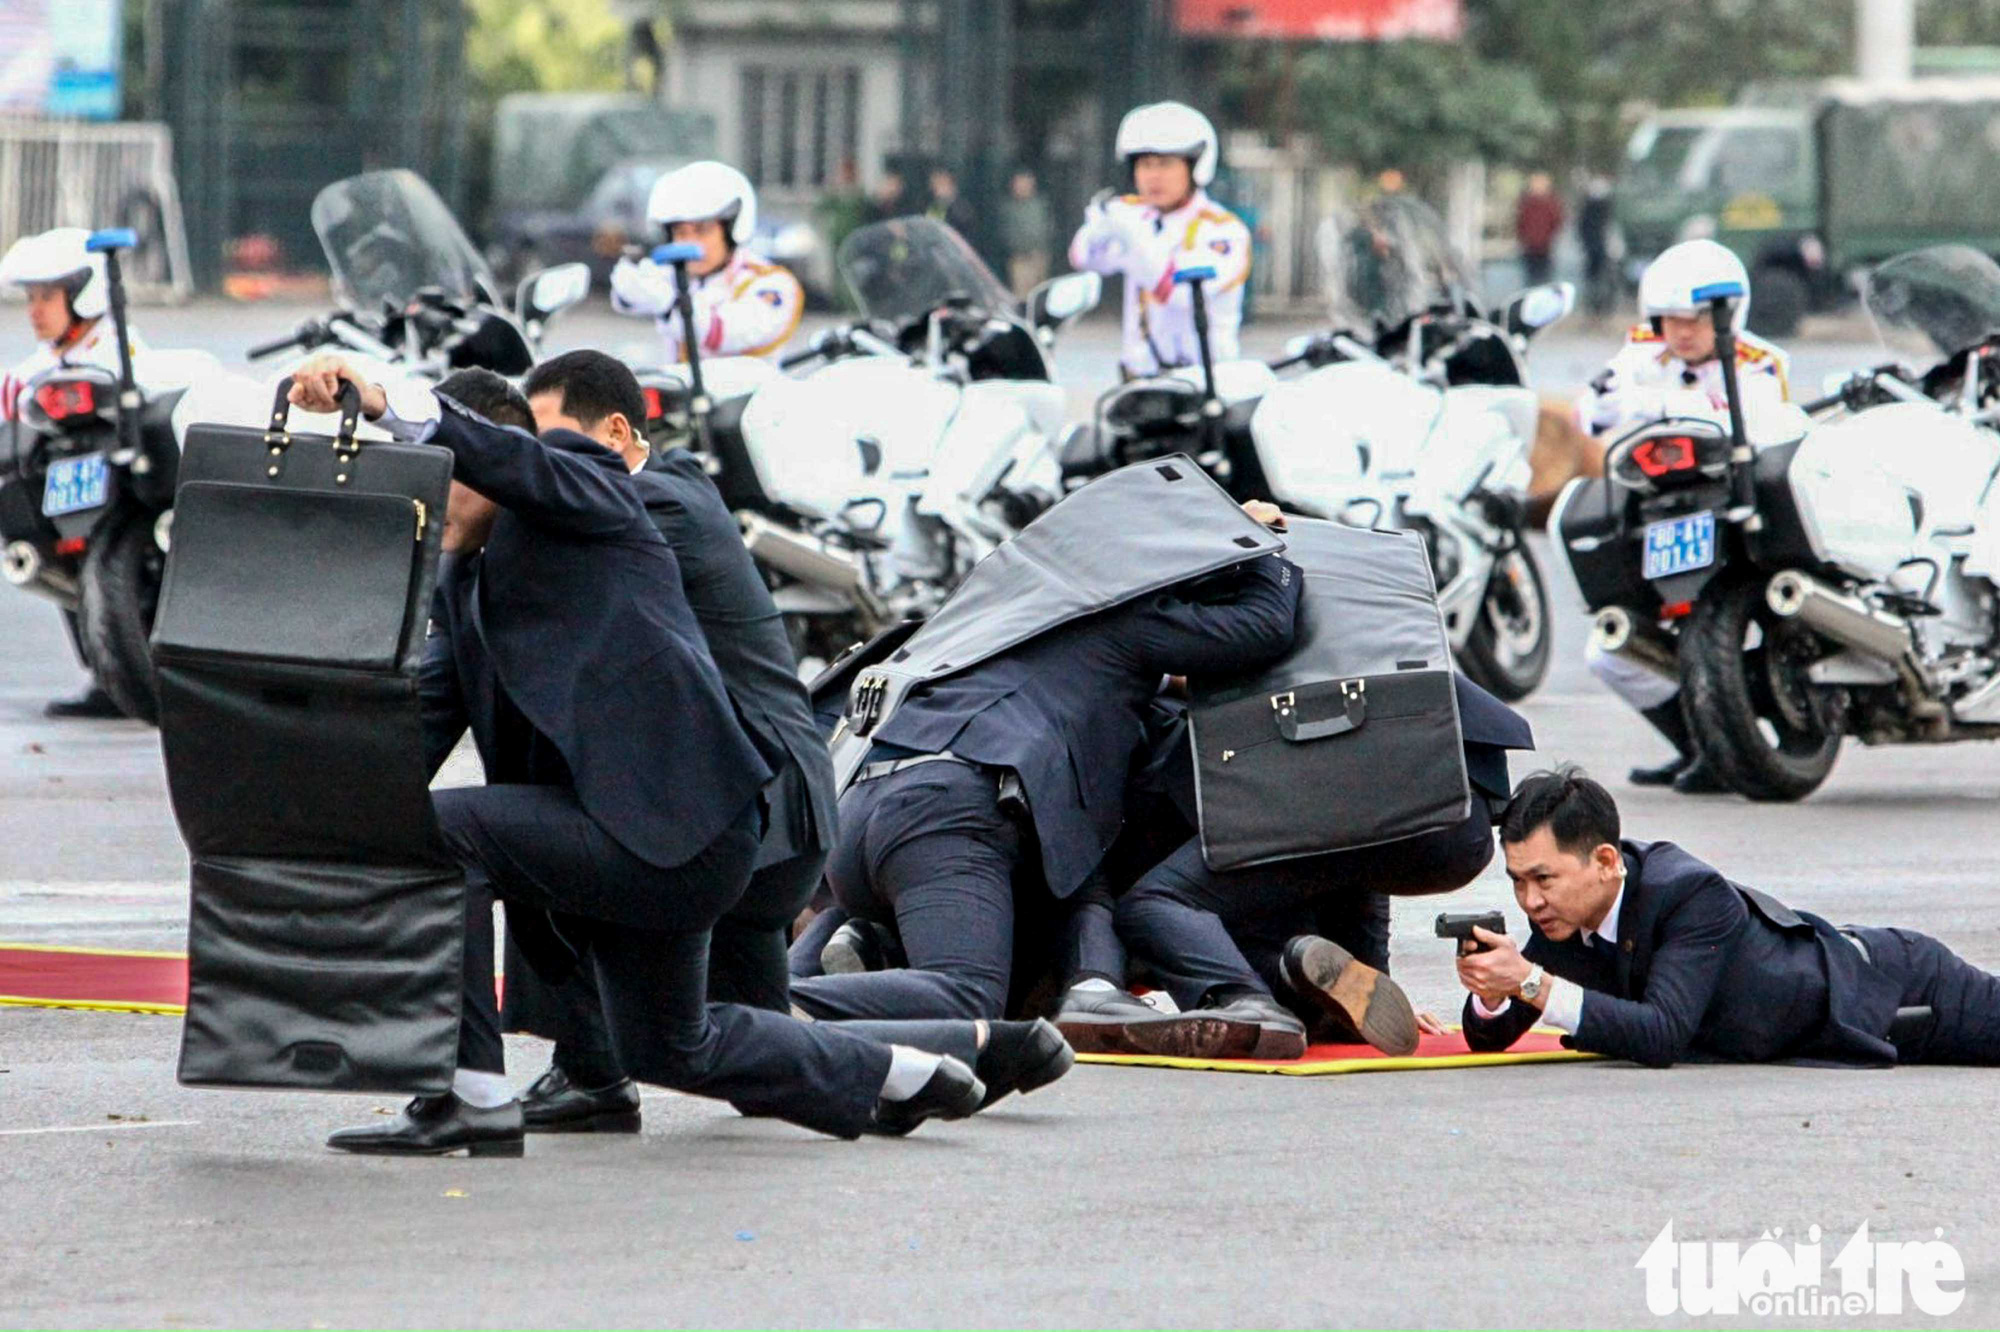 6,000 police, military officers prepare for National Party Congress in Hanoi